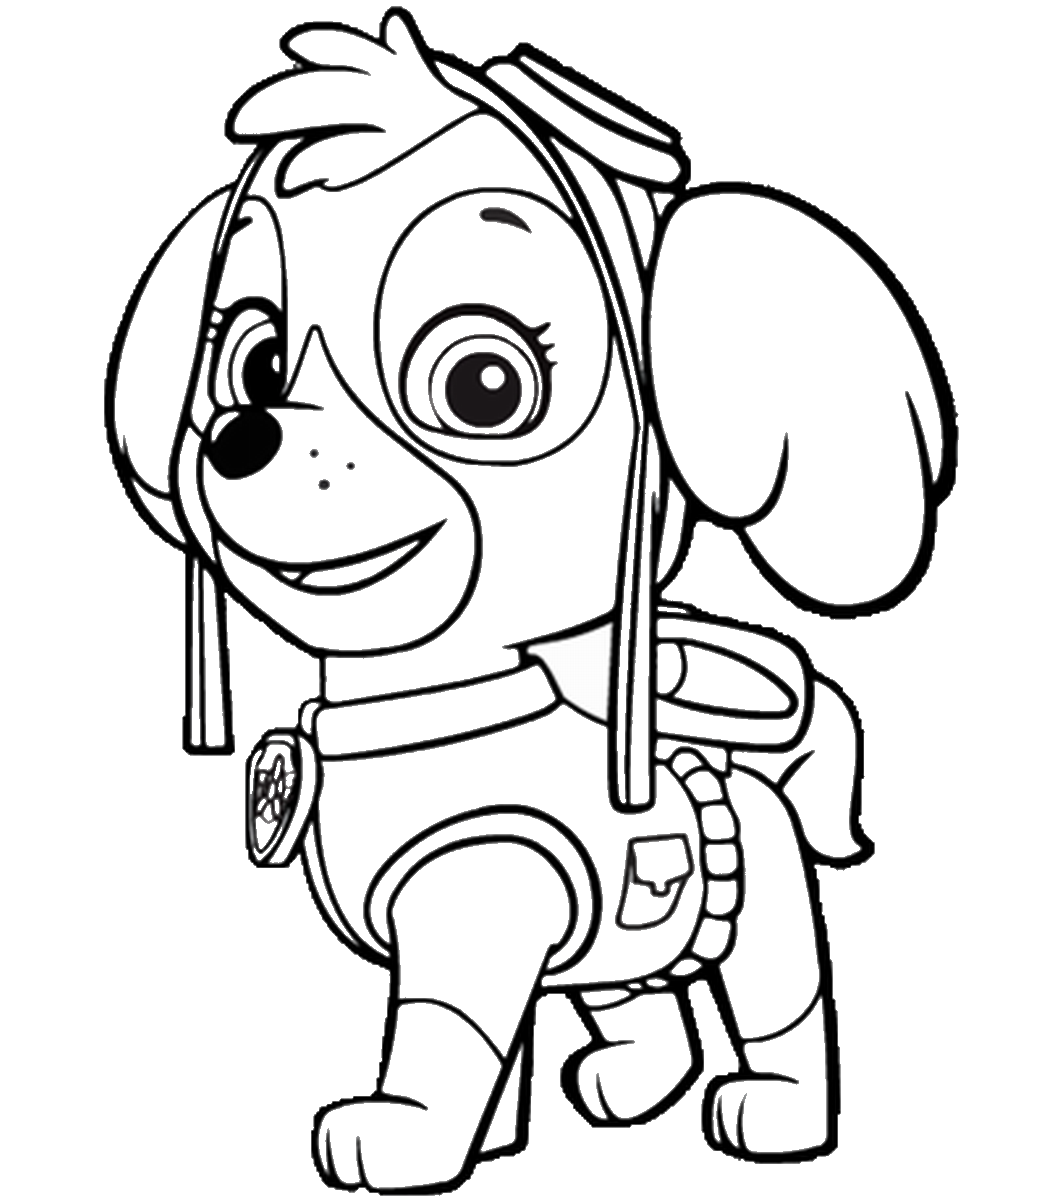 Coloring Pages Of Paw Patrol : Paw patrol free colouring pages